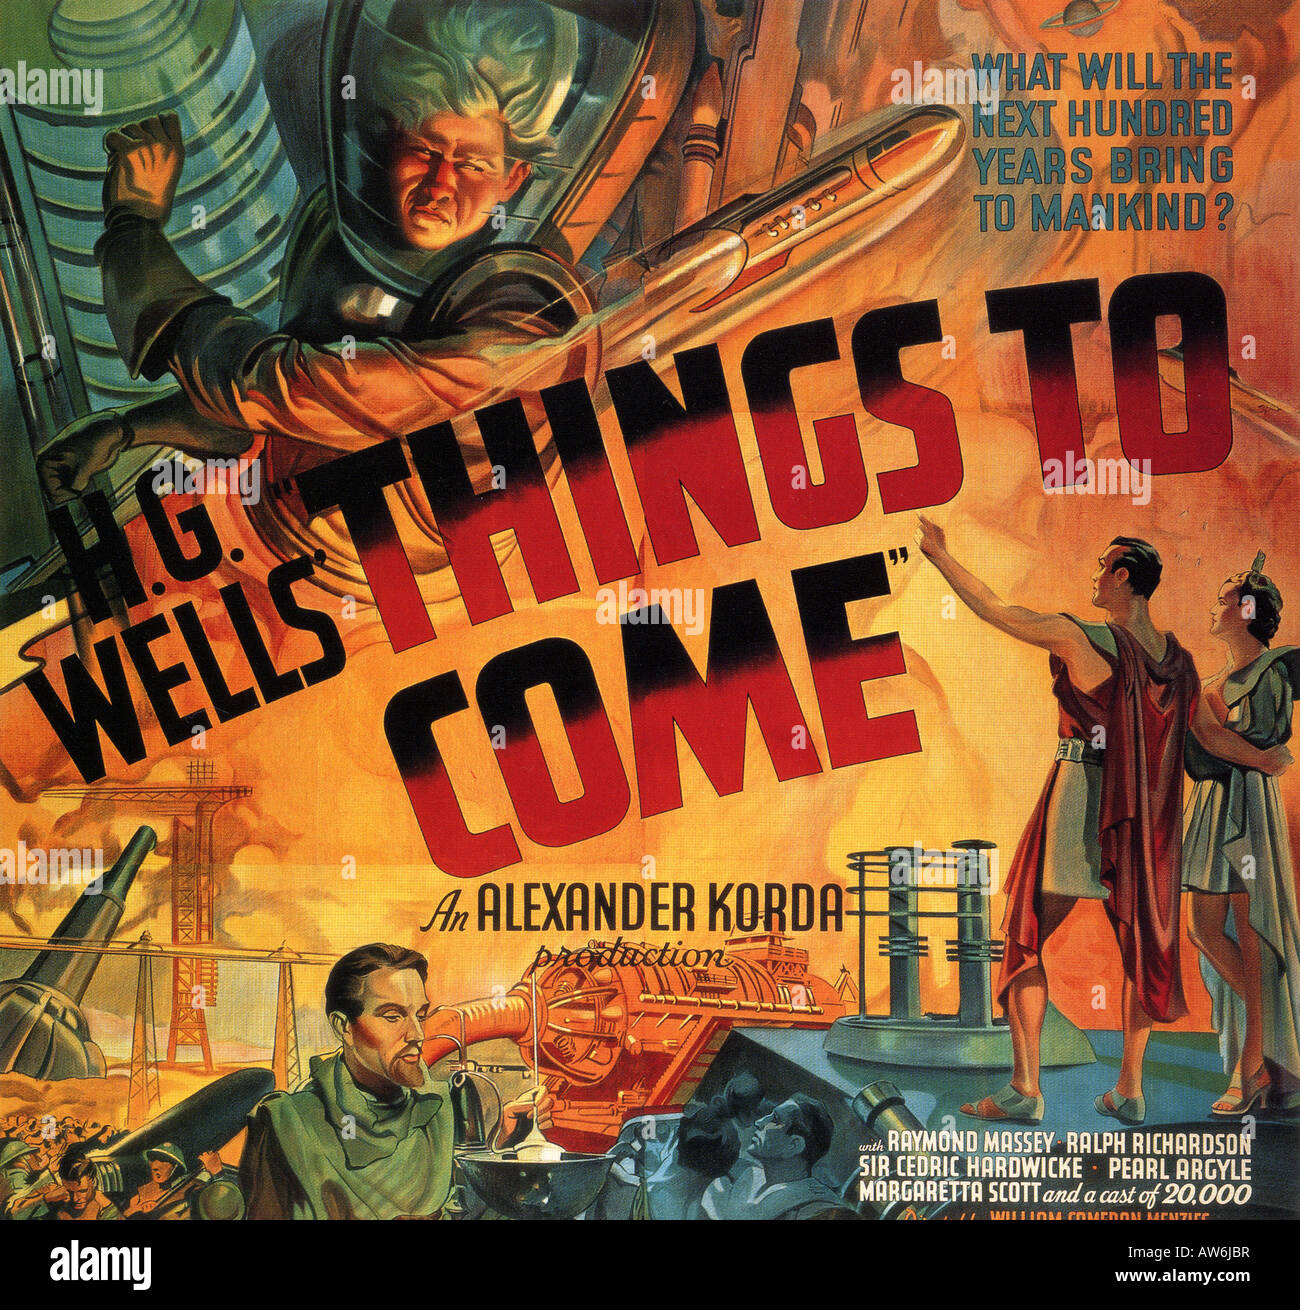 THINGS TO COME - poster for 1936 London Films adaption of the novel by HG Wells - Stock Image